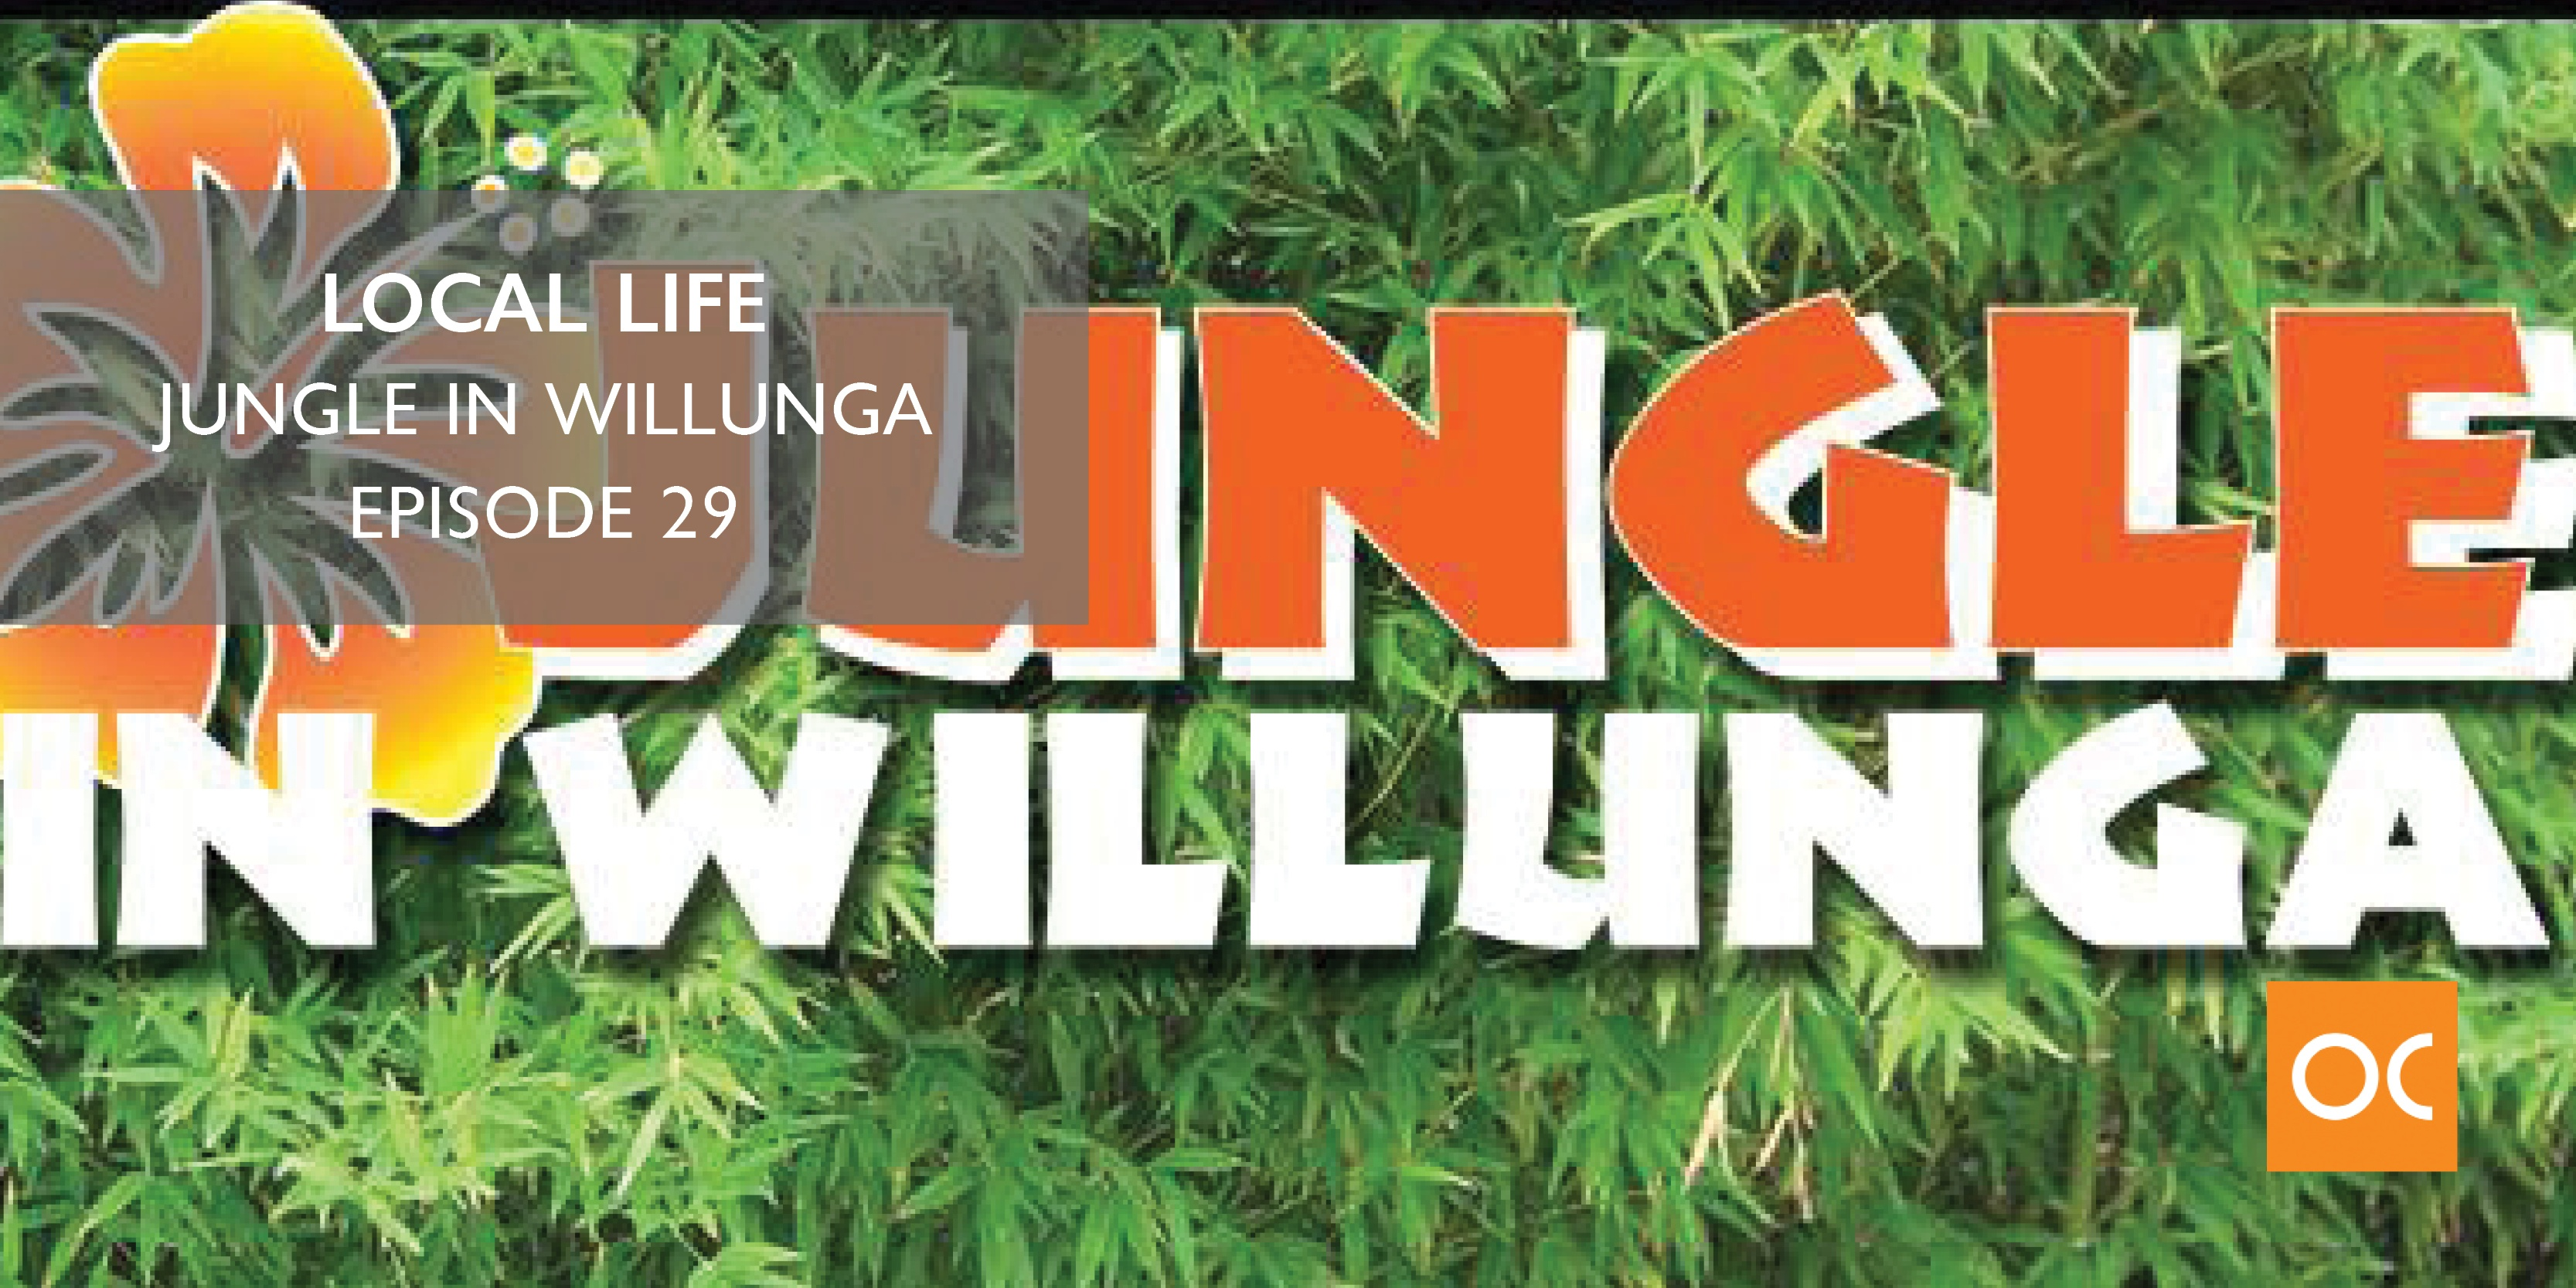 Local Life - Blog feature image Jungle in Willunga Ep 29